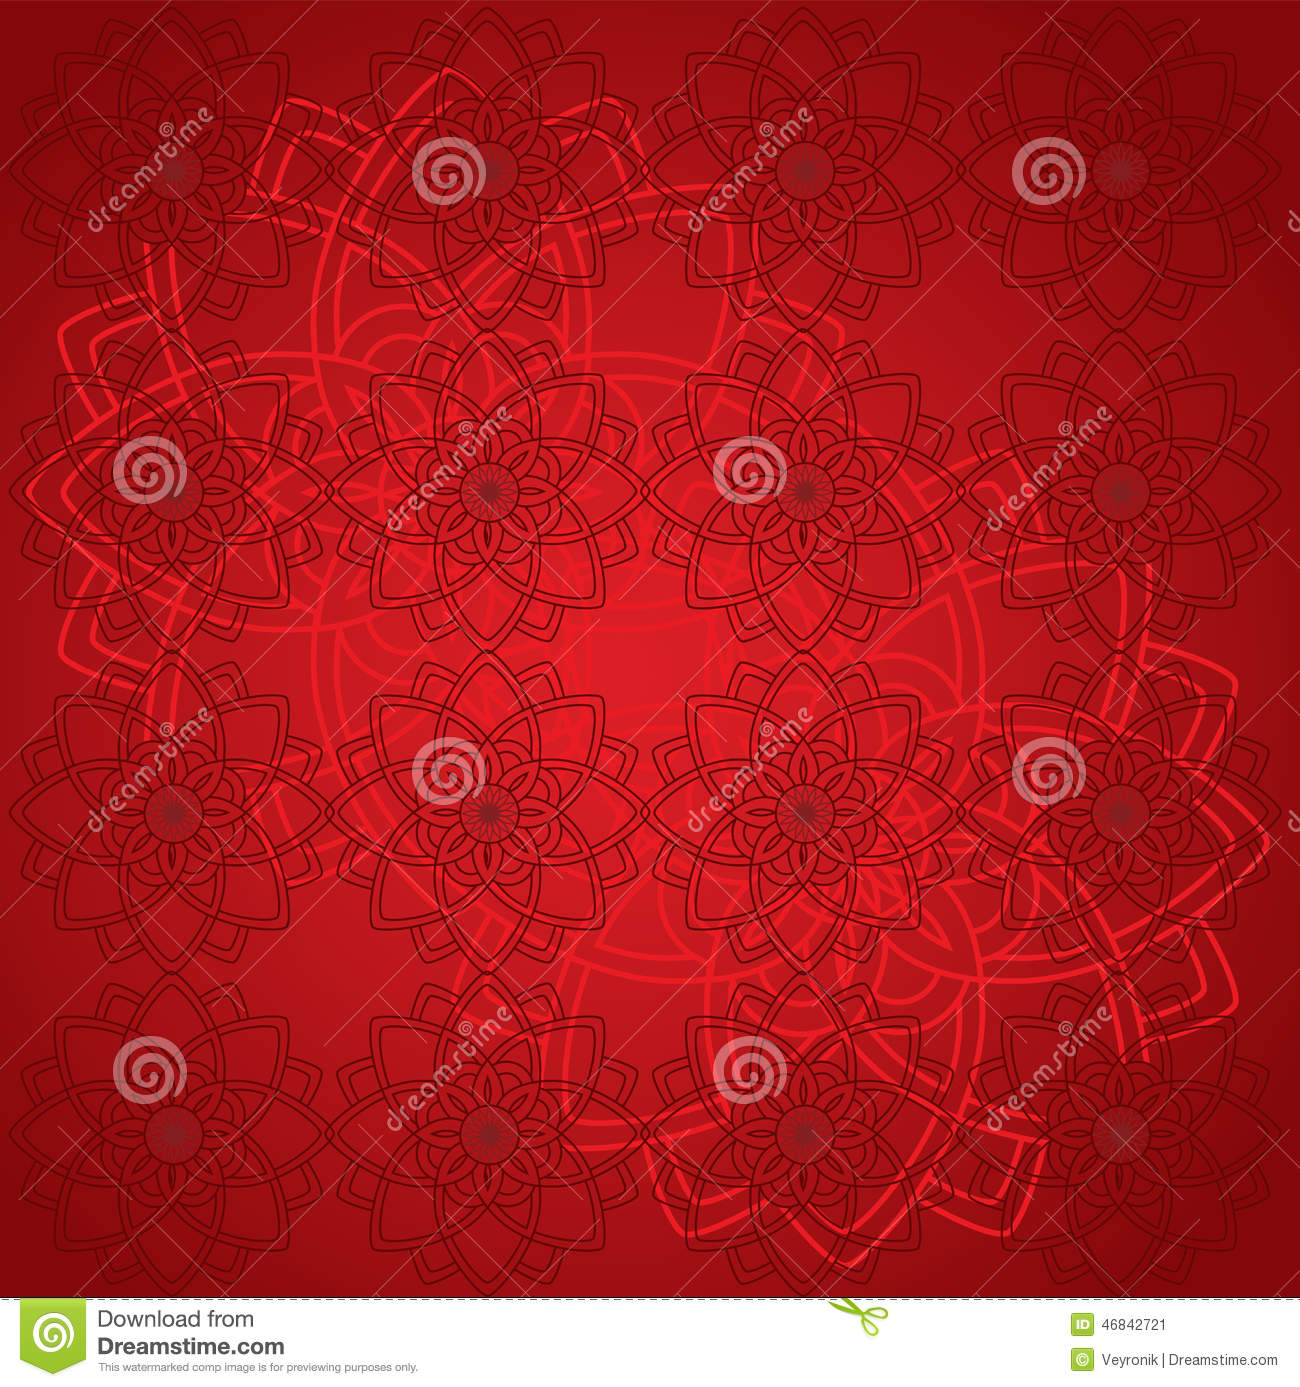 Red Mandala Wallpaper Stock Vector Illustration Of Pattern 46842721